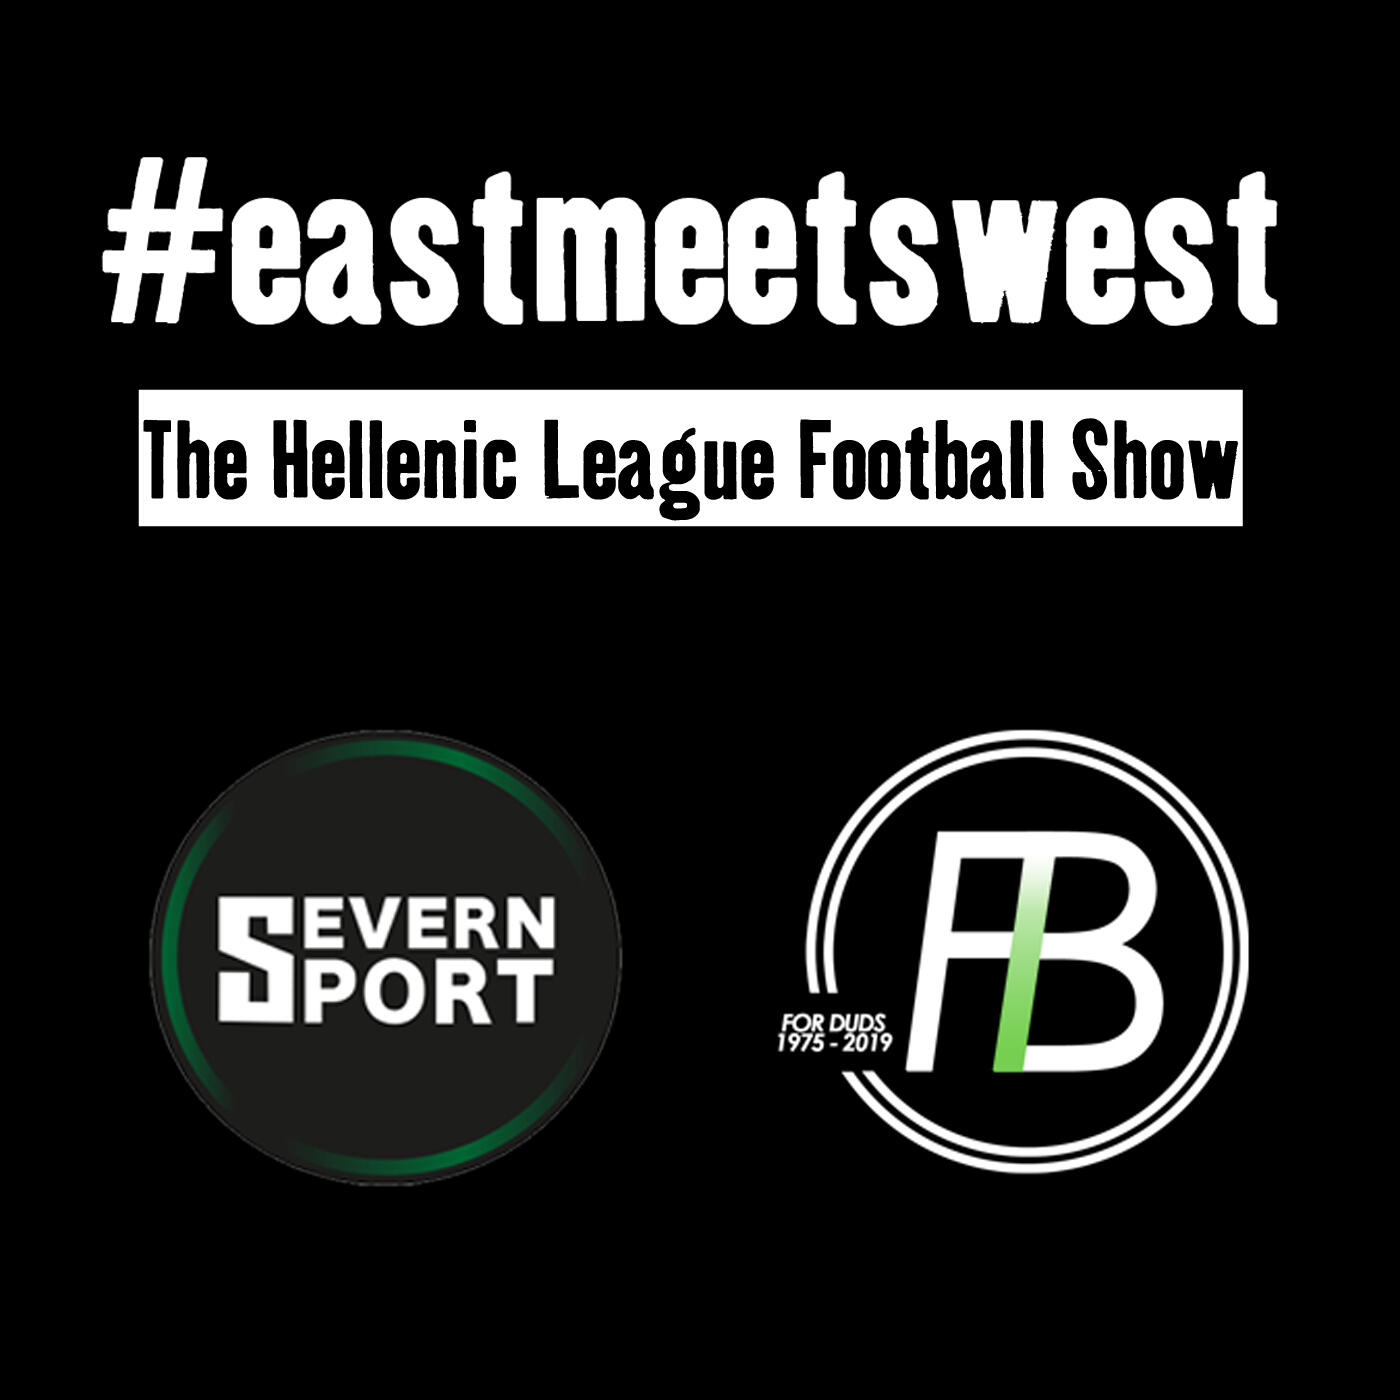 51: #EastMeetsWest - Episode 6 of the Hellenic League Football show